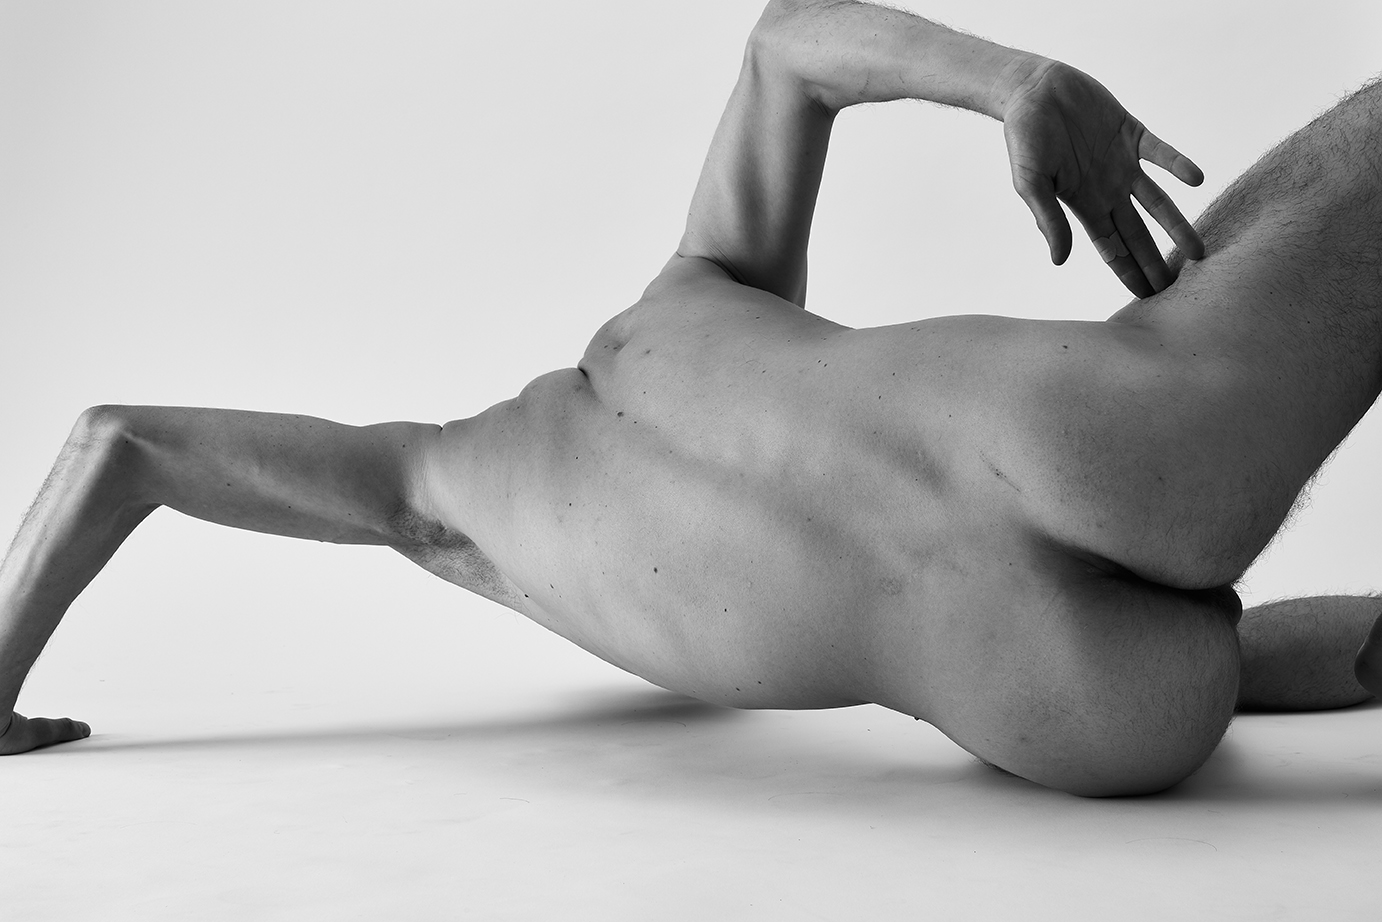 David Hatters photography Study of my body 6